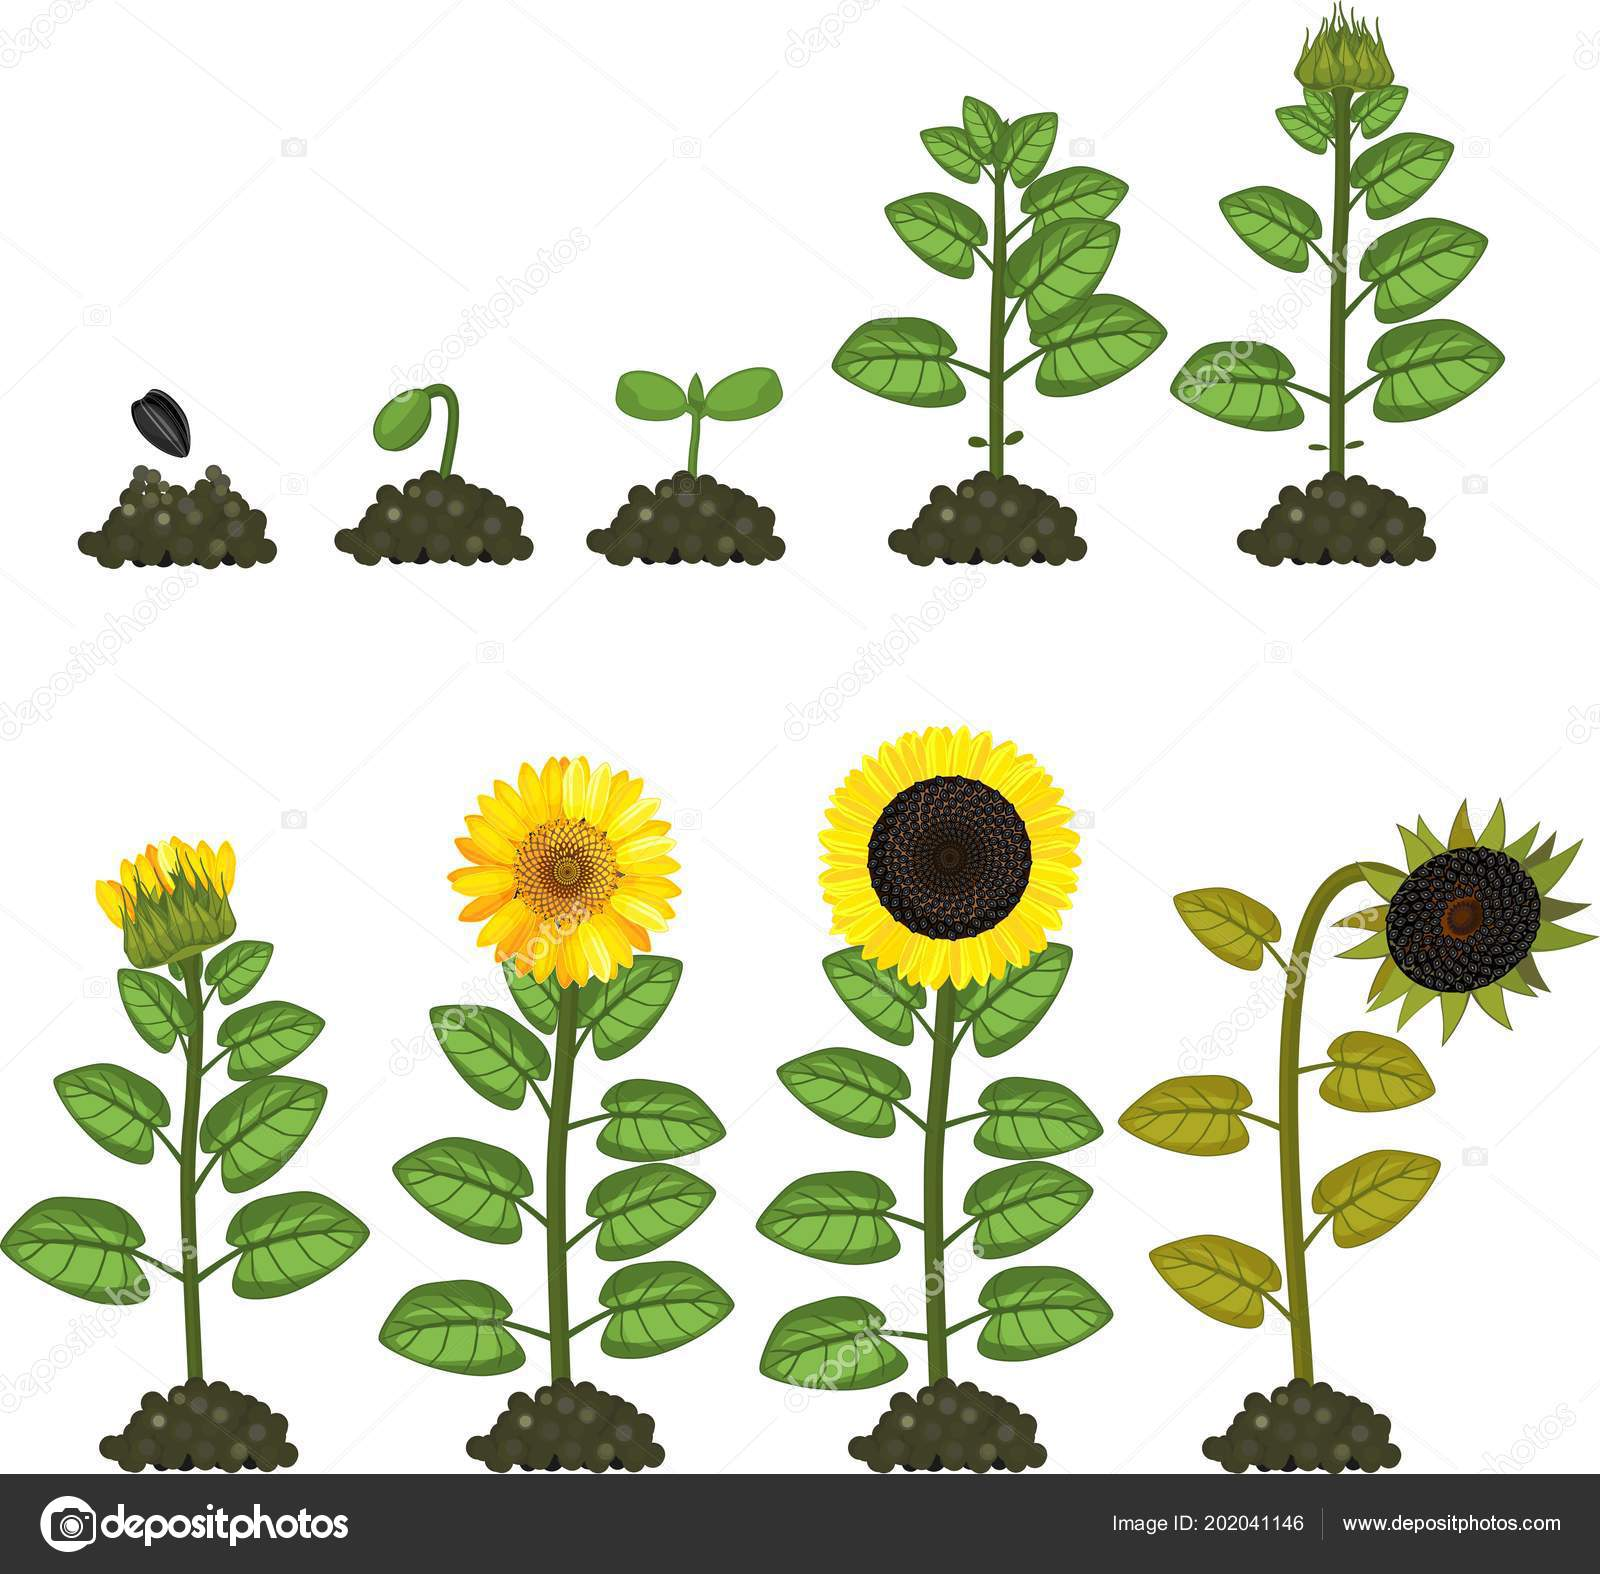 Sunflower Life Cycle Growth Stages Seed Flowering Fruit